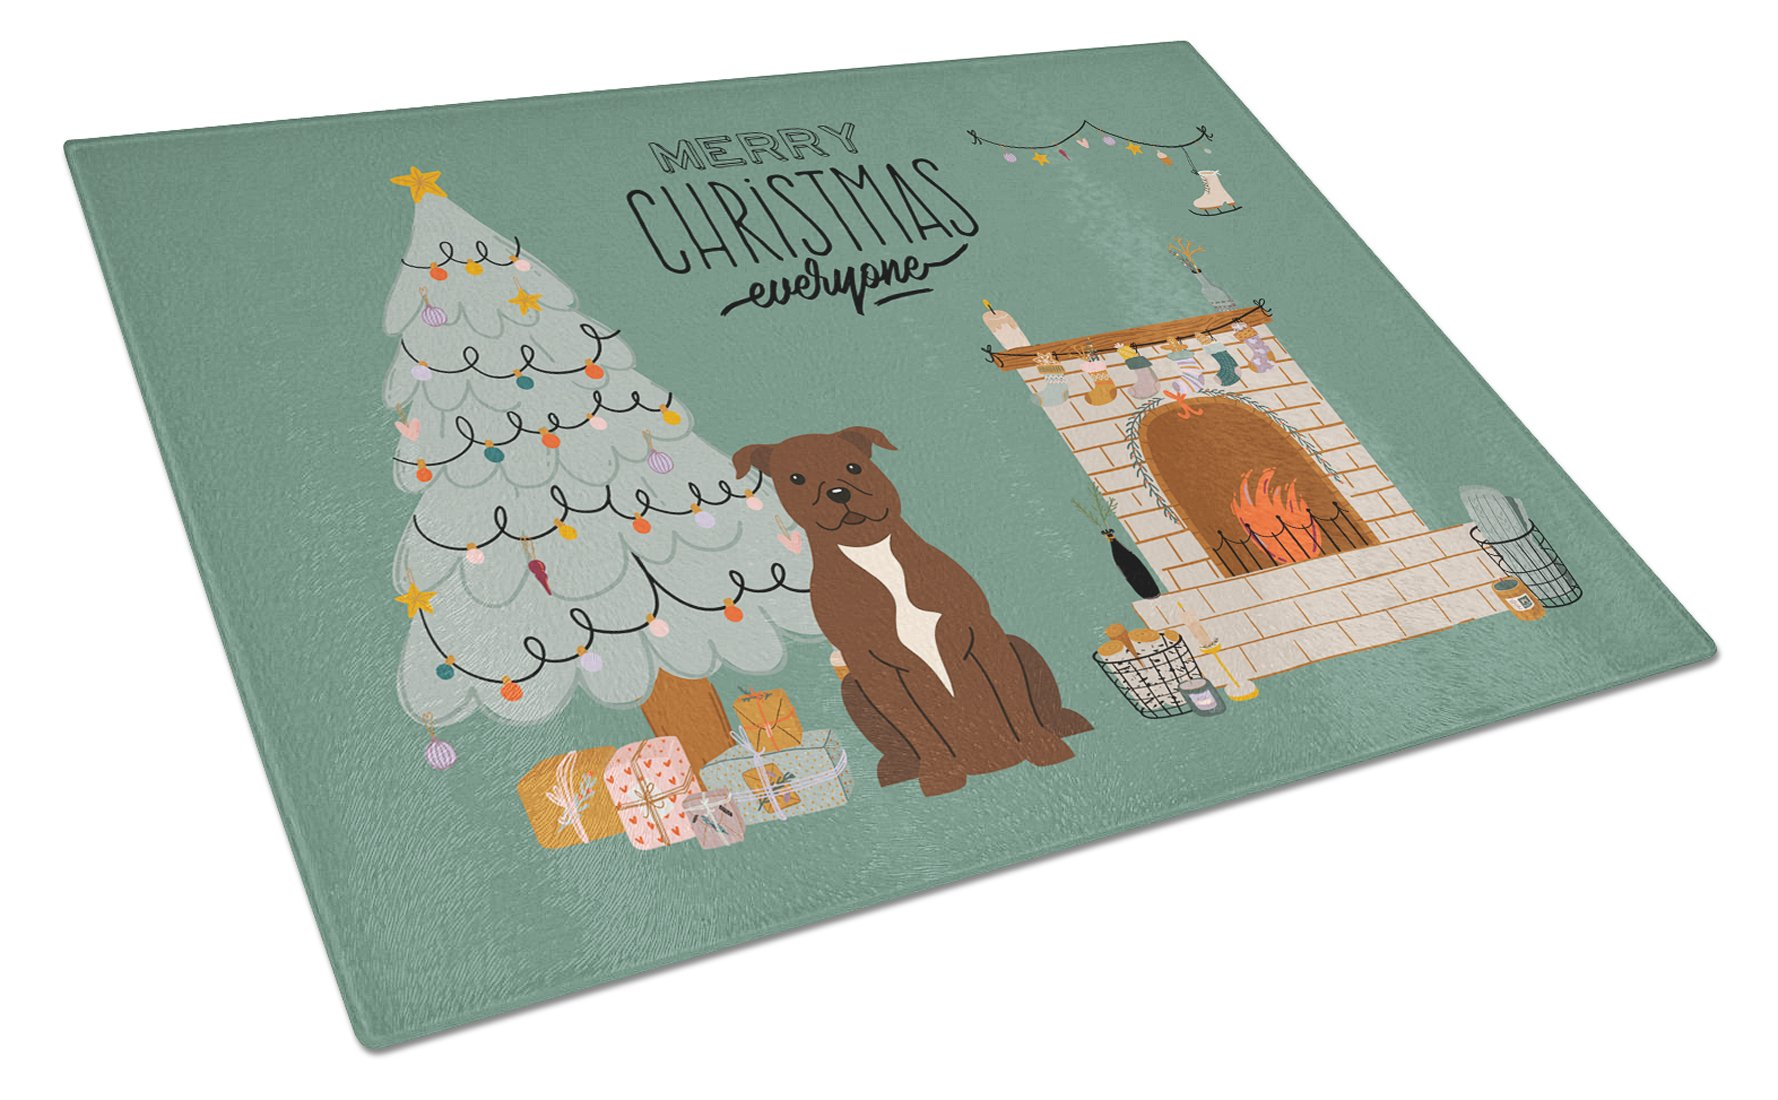 Chocolate Staffordshire Bull Terrier Christmas Everyone Glass Cutting Board Large CK7611LCB by Caroline's Treasures